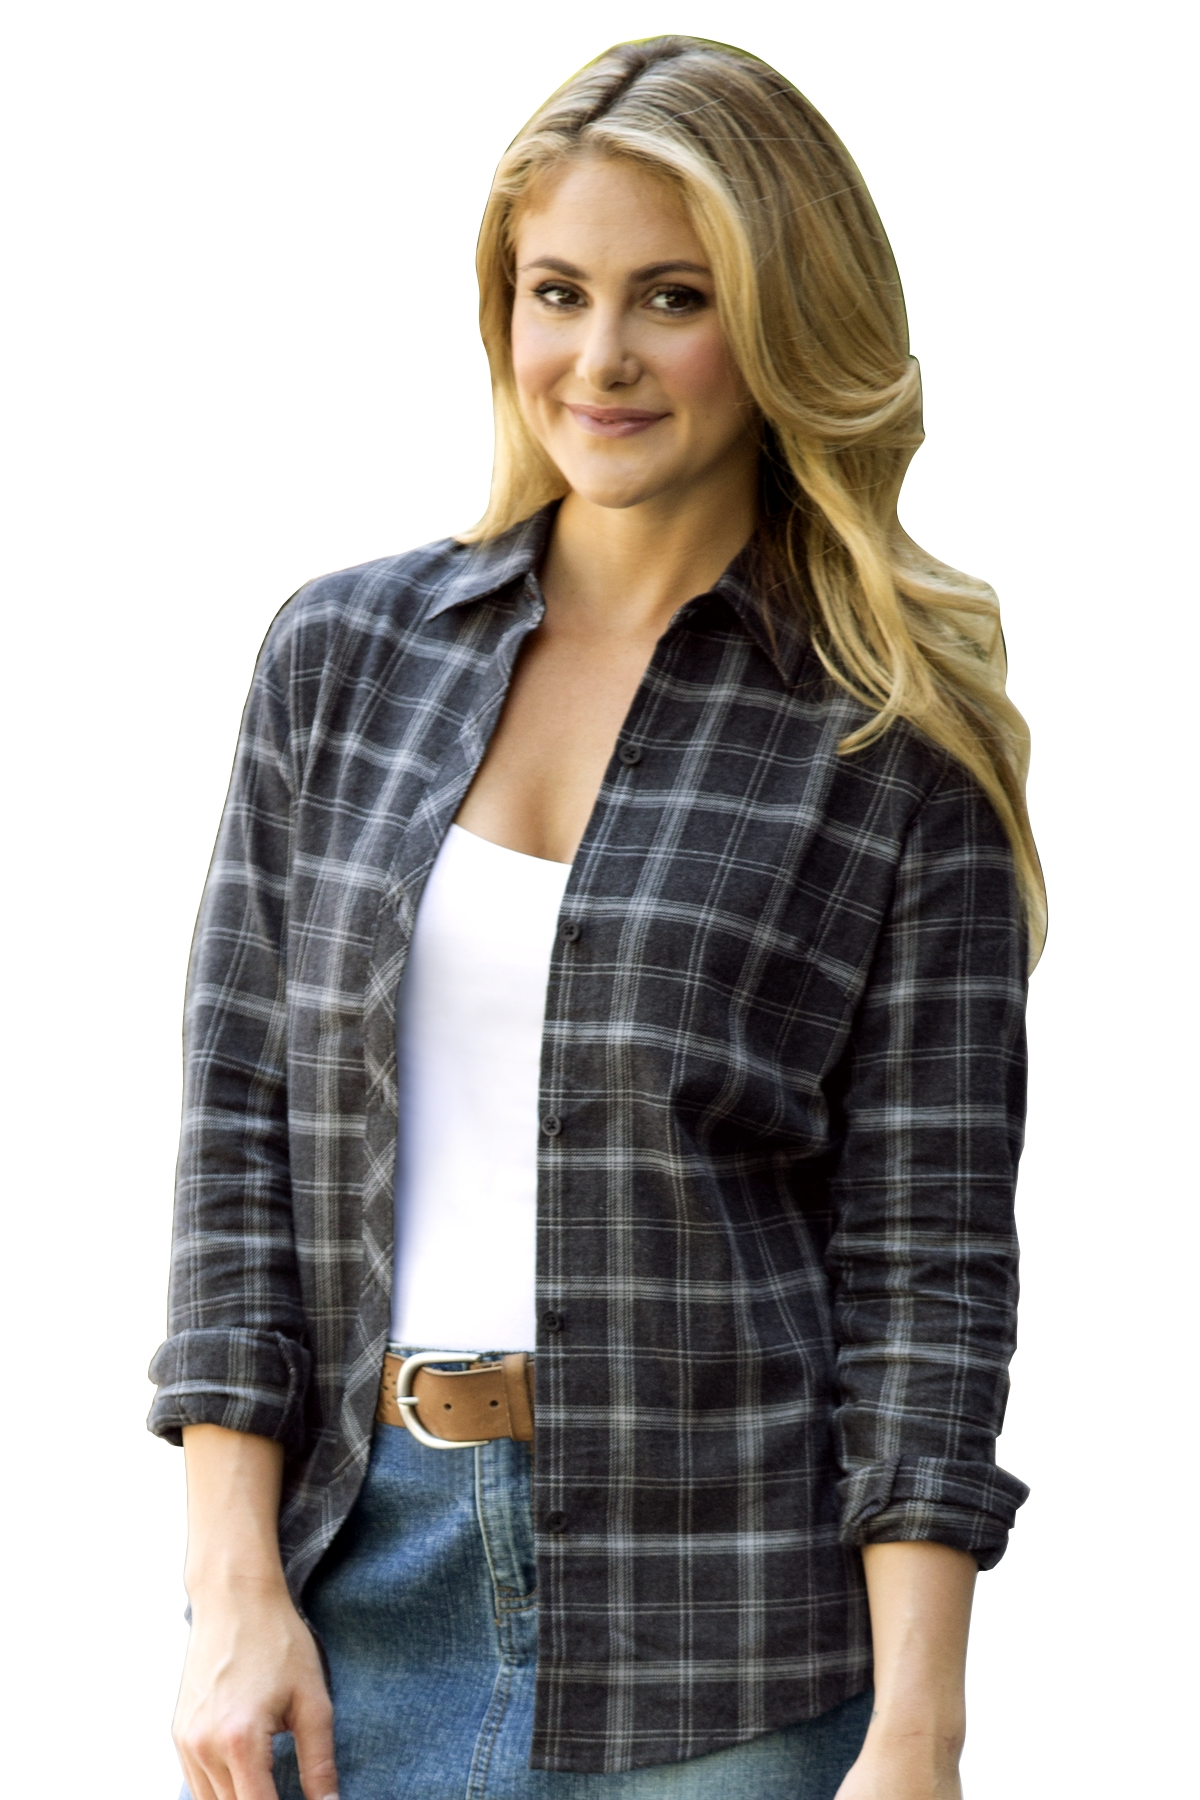 Vantage 1974 - Women's Brewer Flannel Shirt